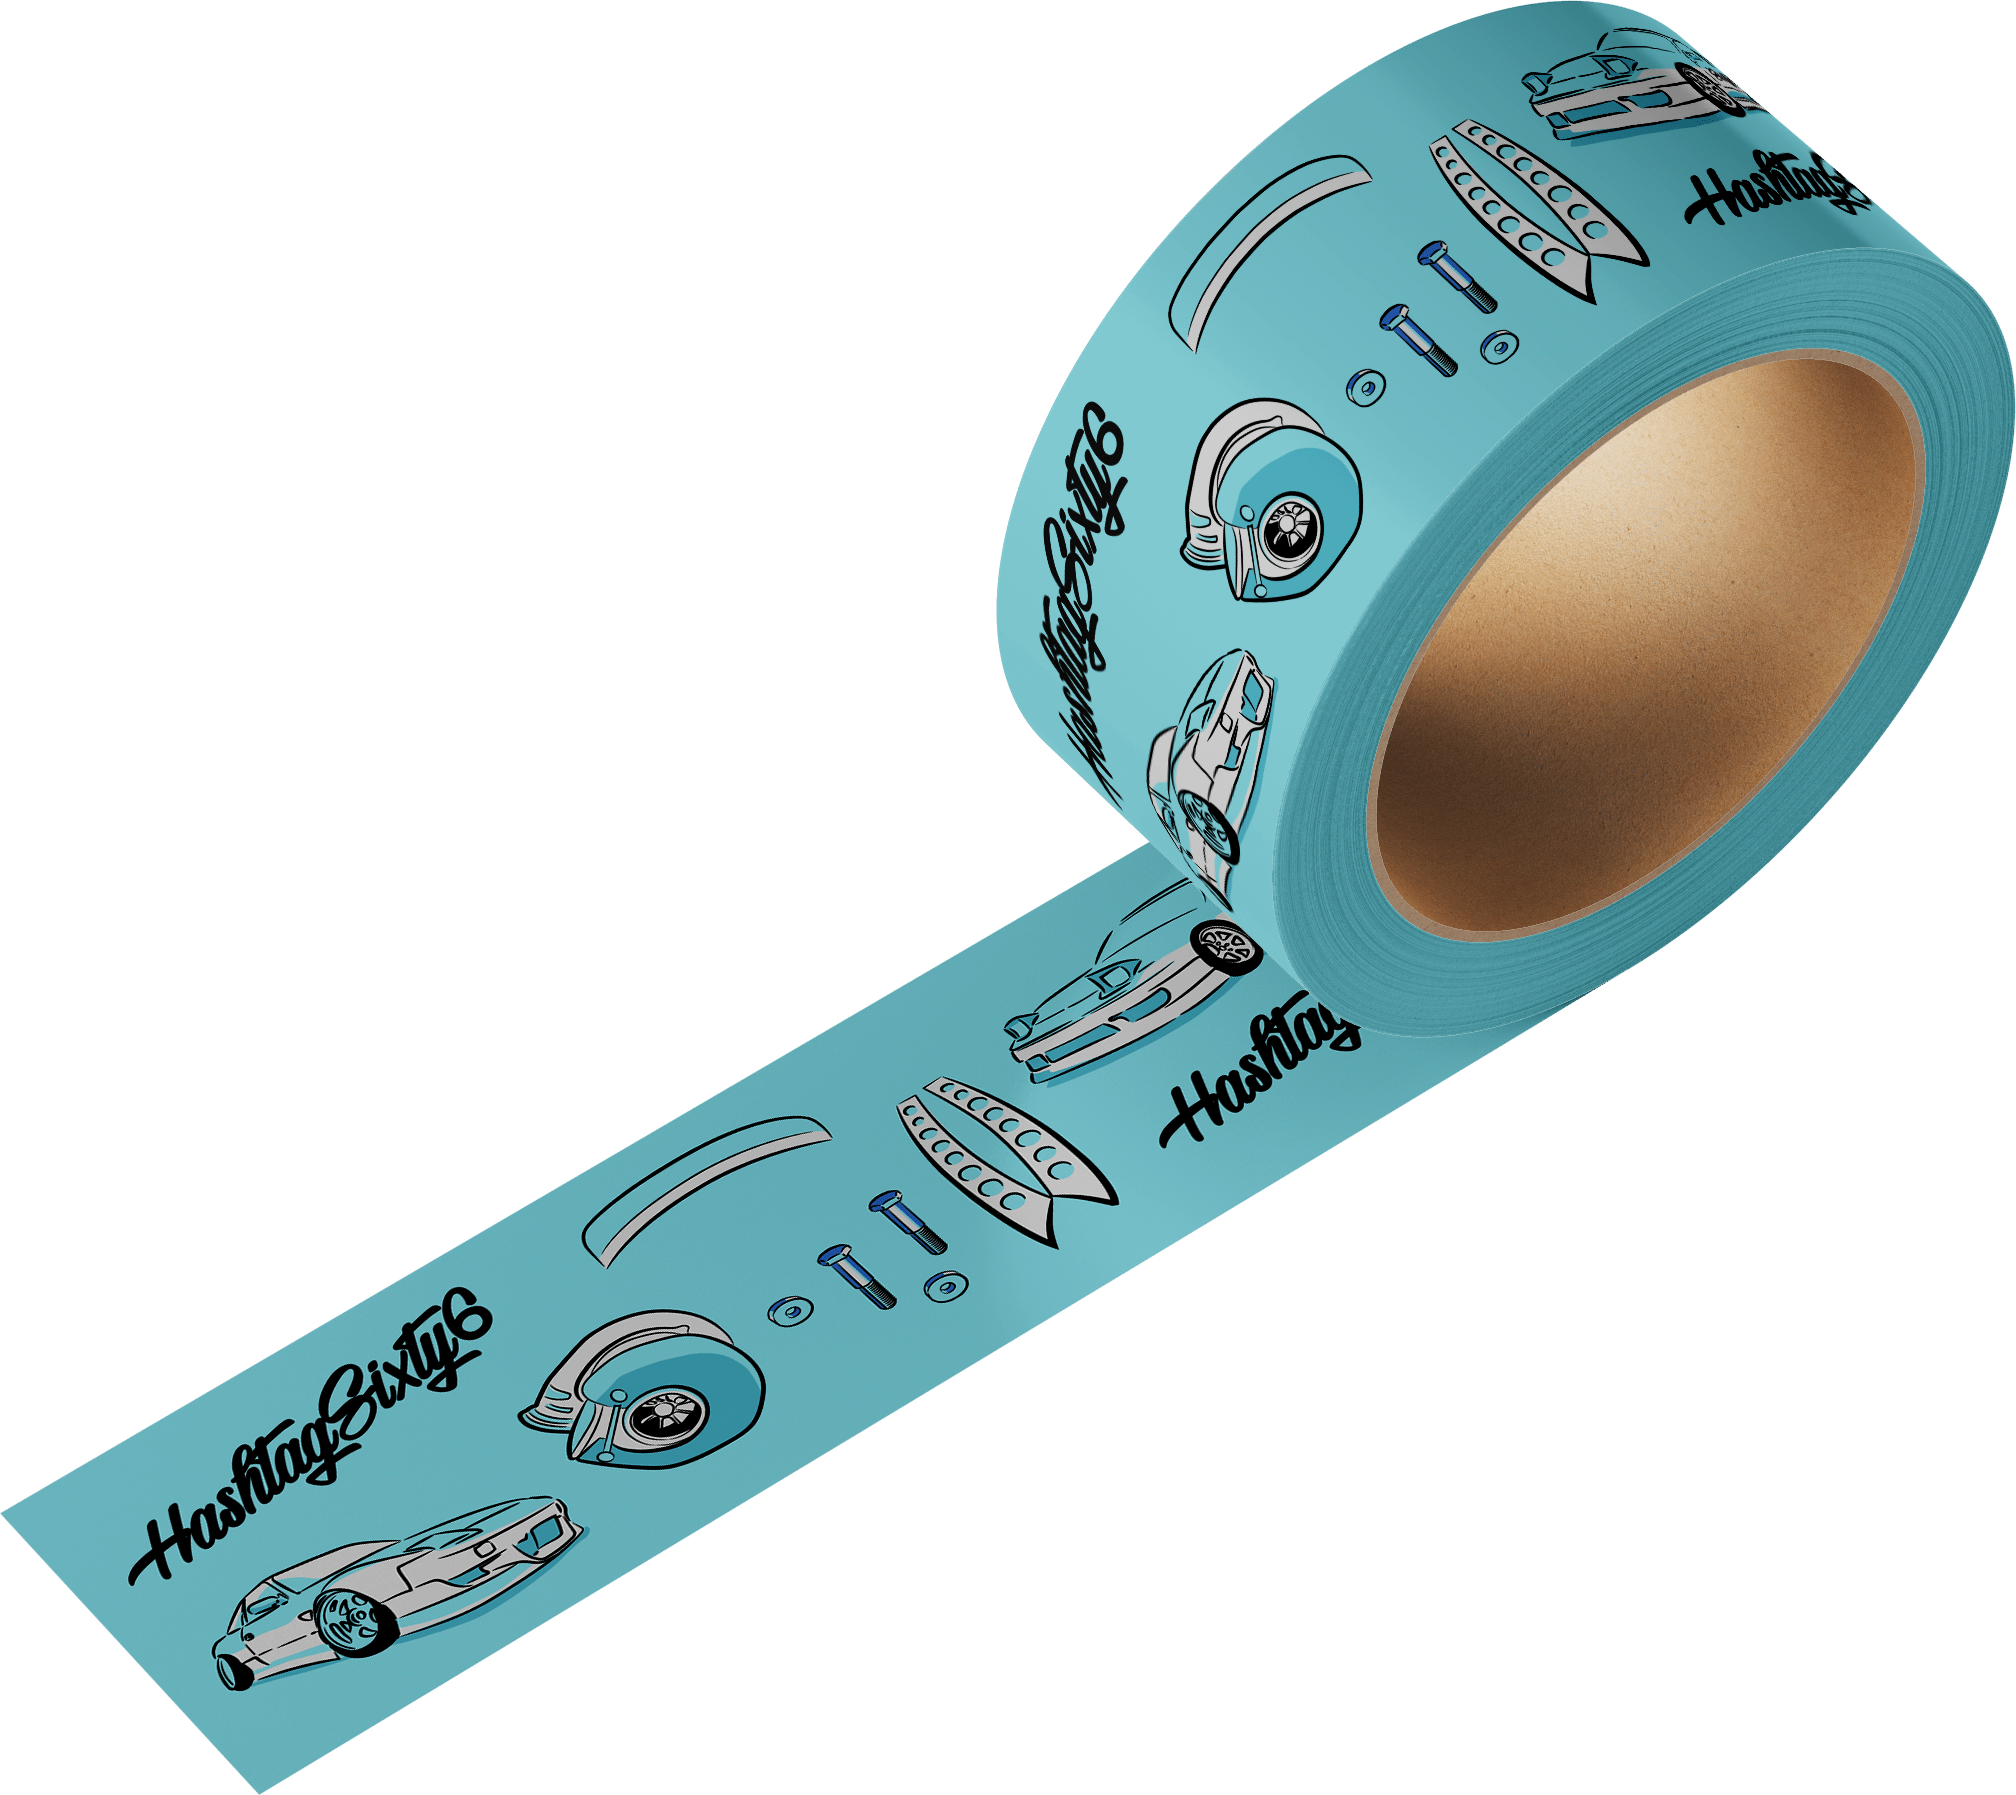 hashtag sixty six brand graphics on light blue tape